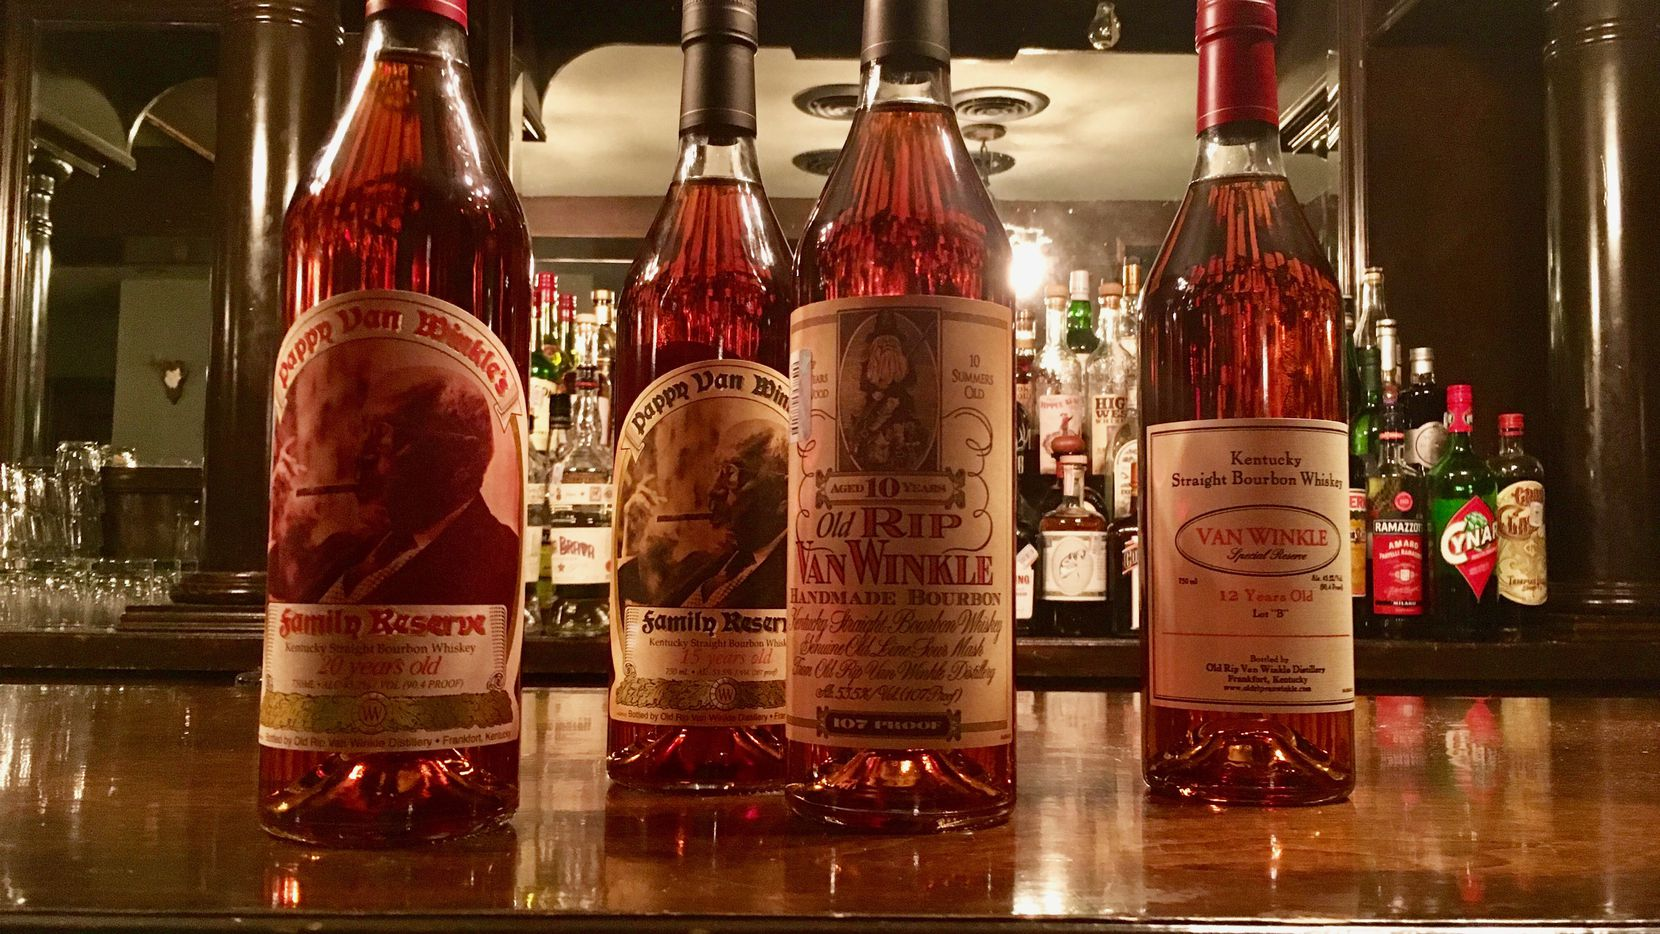 Henry's Majestic, a bar and restaurant in Dallas, will be offering a four-course whiskey tasting of four kinds of coveted Pappy Van Winkle whiskey.